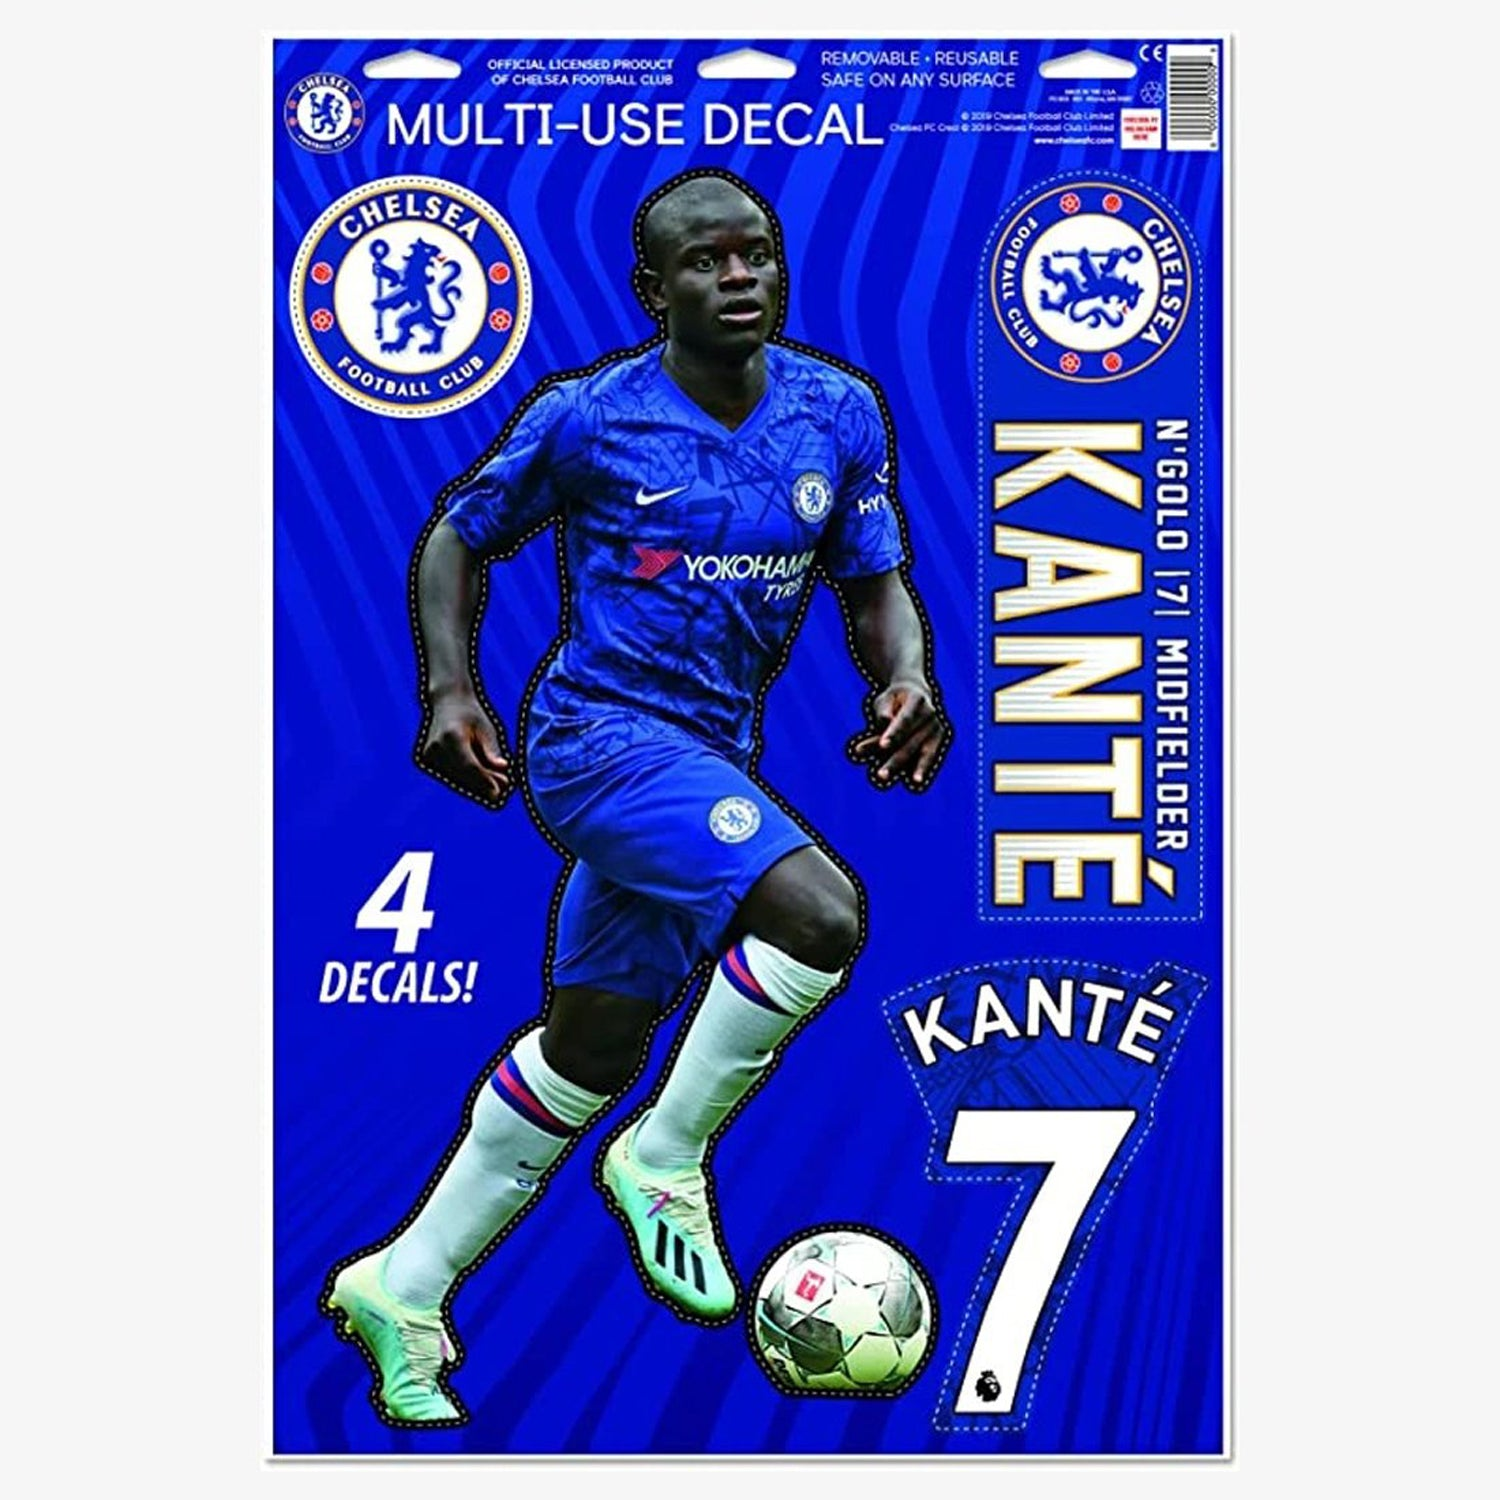 Kante Chelsea Decal 11x17